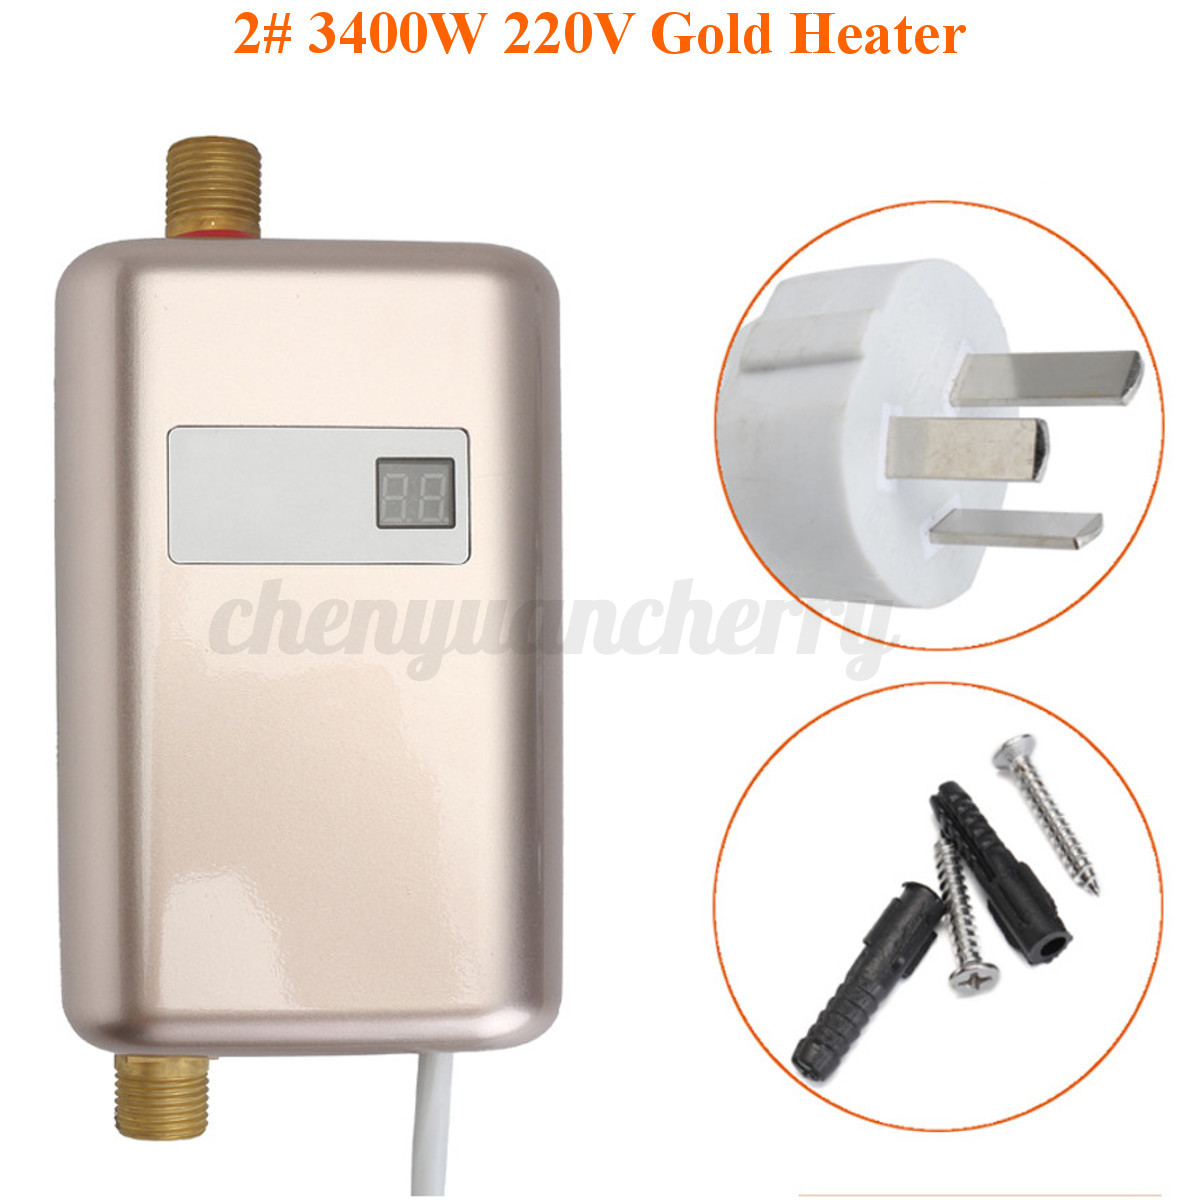 4 types tankless instant bathroom electric hot water heater shower system 220v ebay for Tankless water heater for bathroom